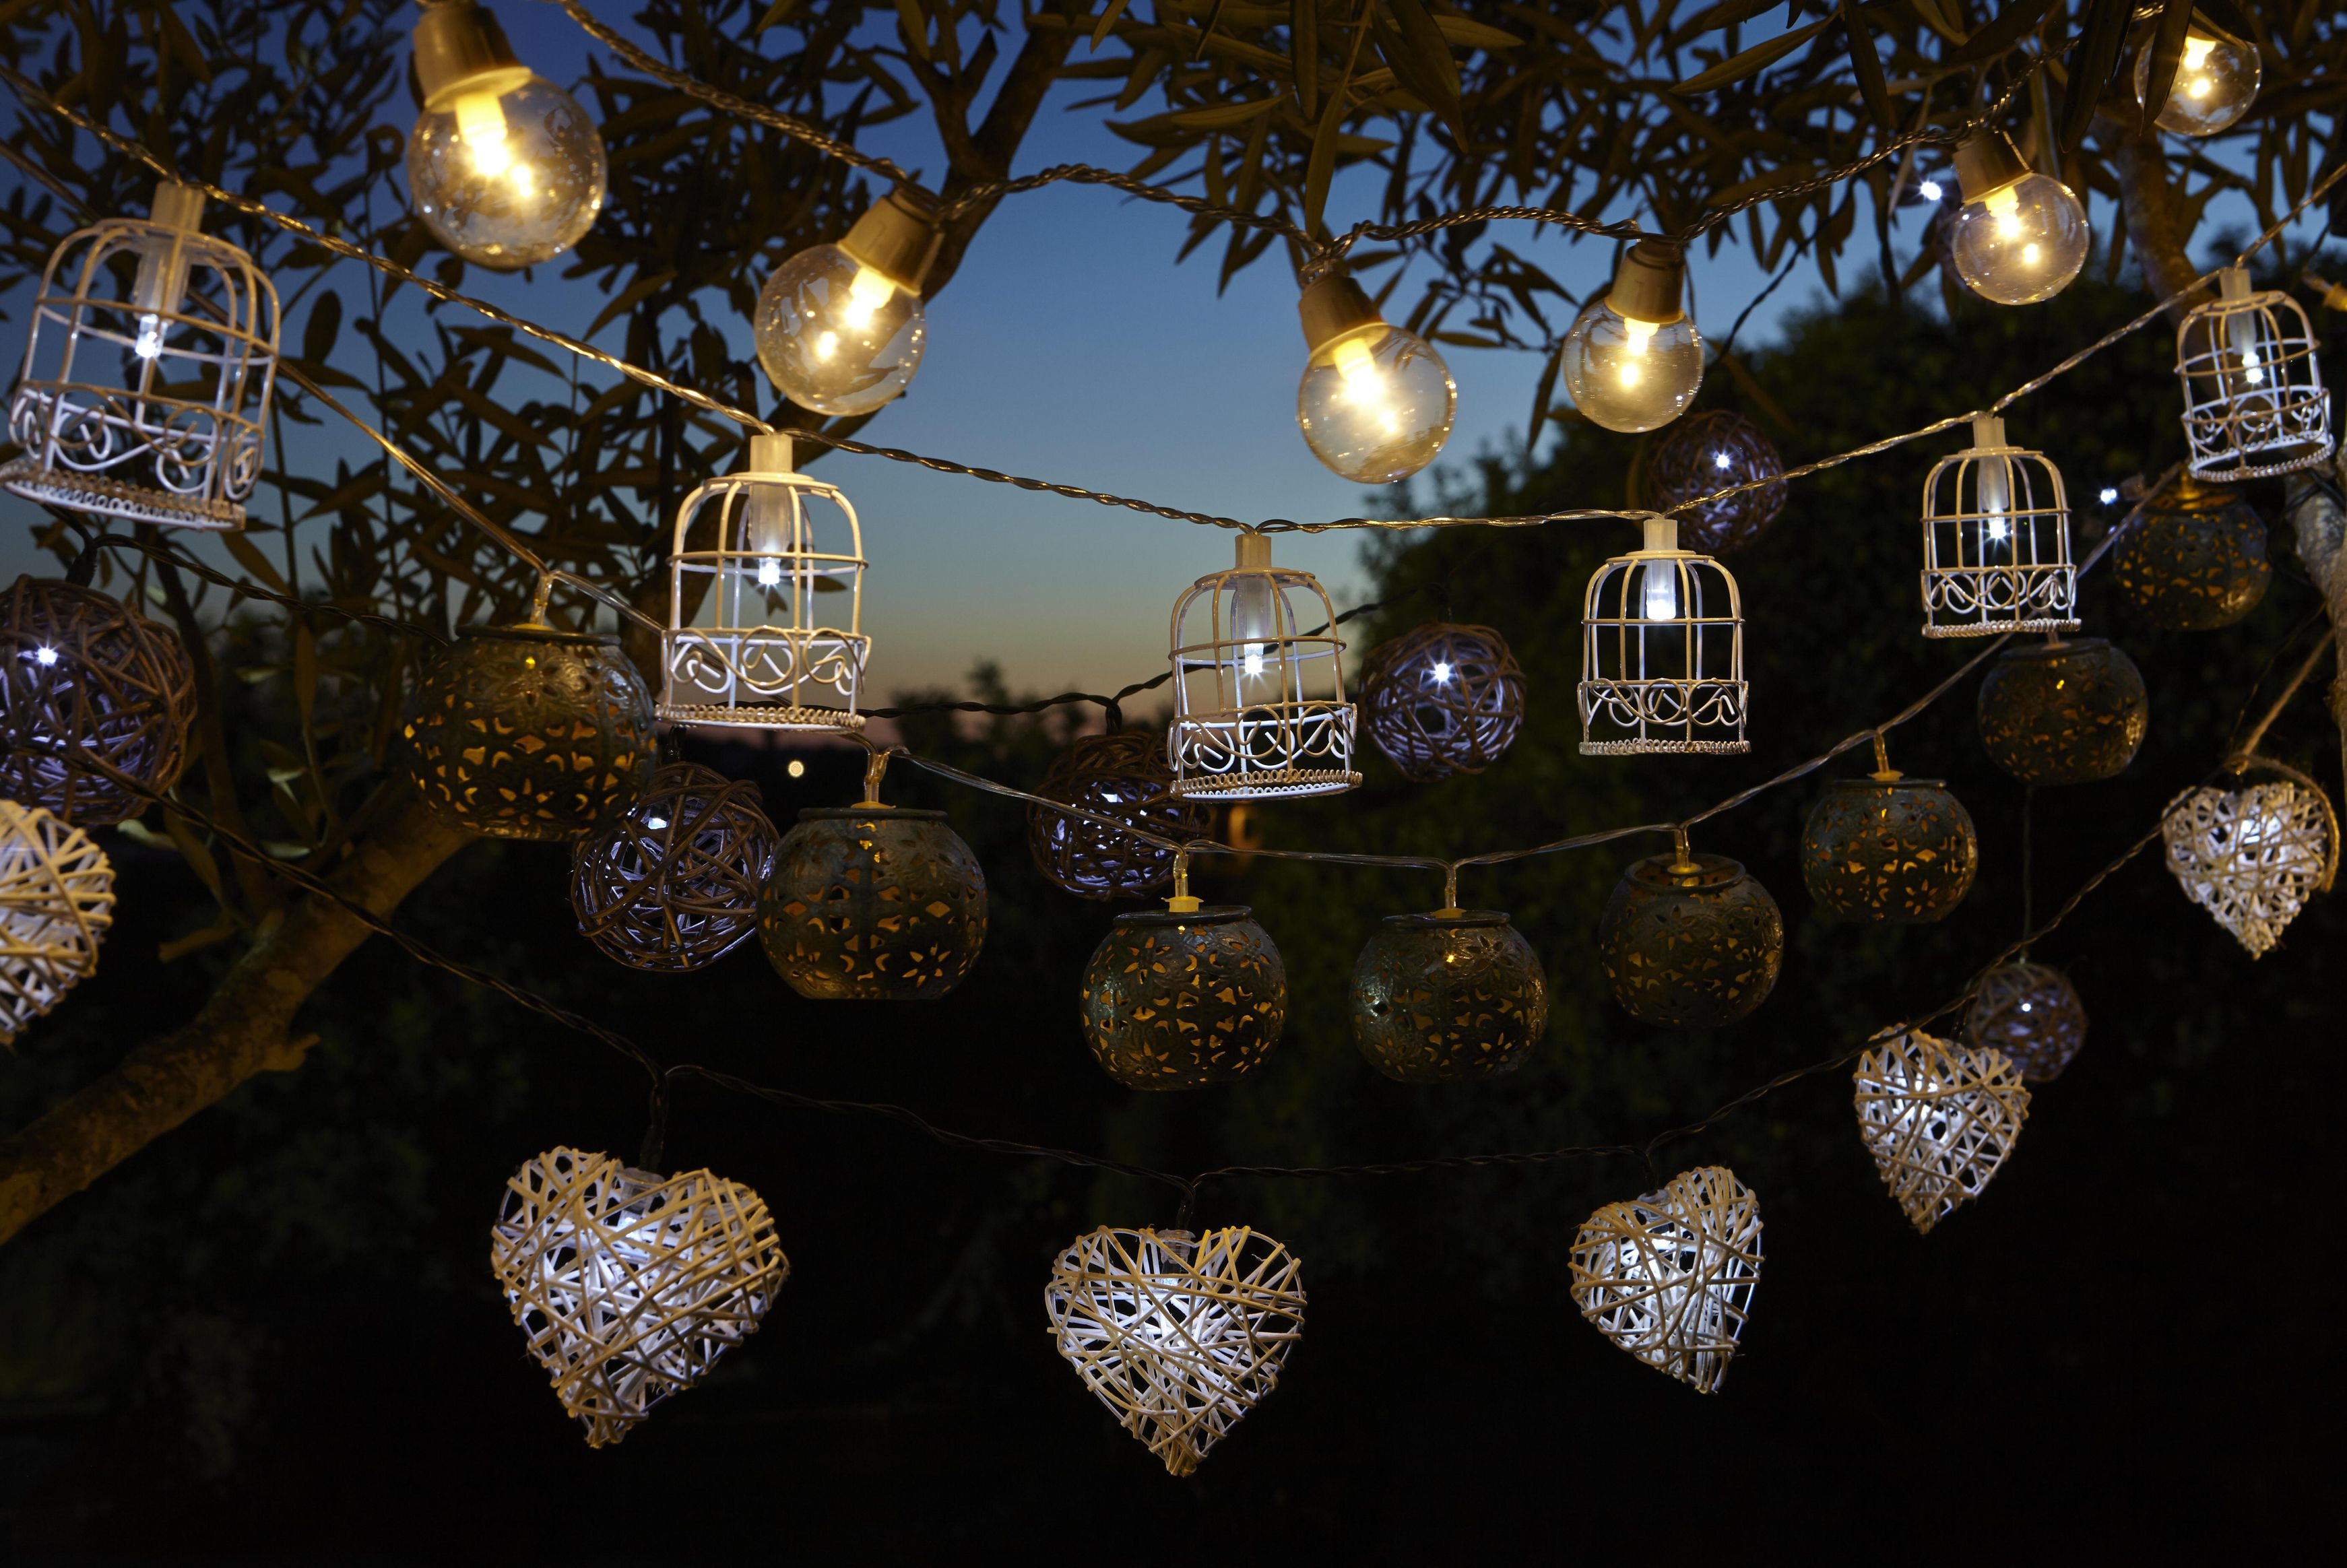 Outdoor lighting buying guide ideas advice diy at b q for B q christmas decorations